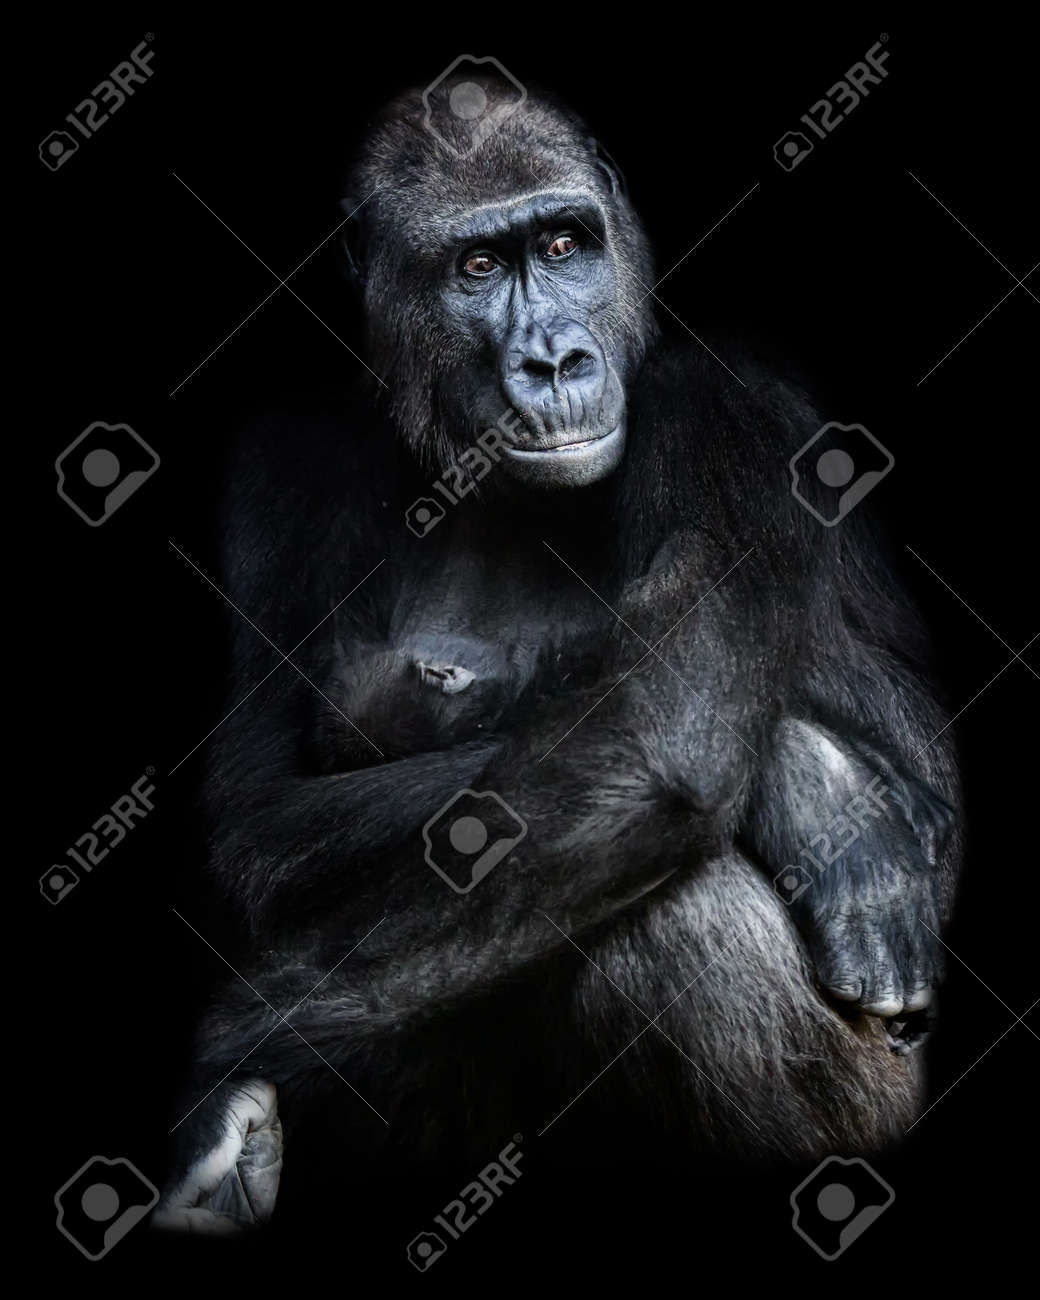 Female gorilla sitting with baby gorilla in her arms.Photograph with black background in low key - 159874323